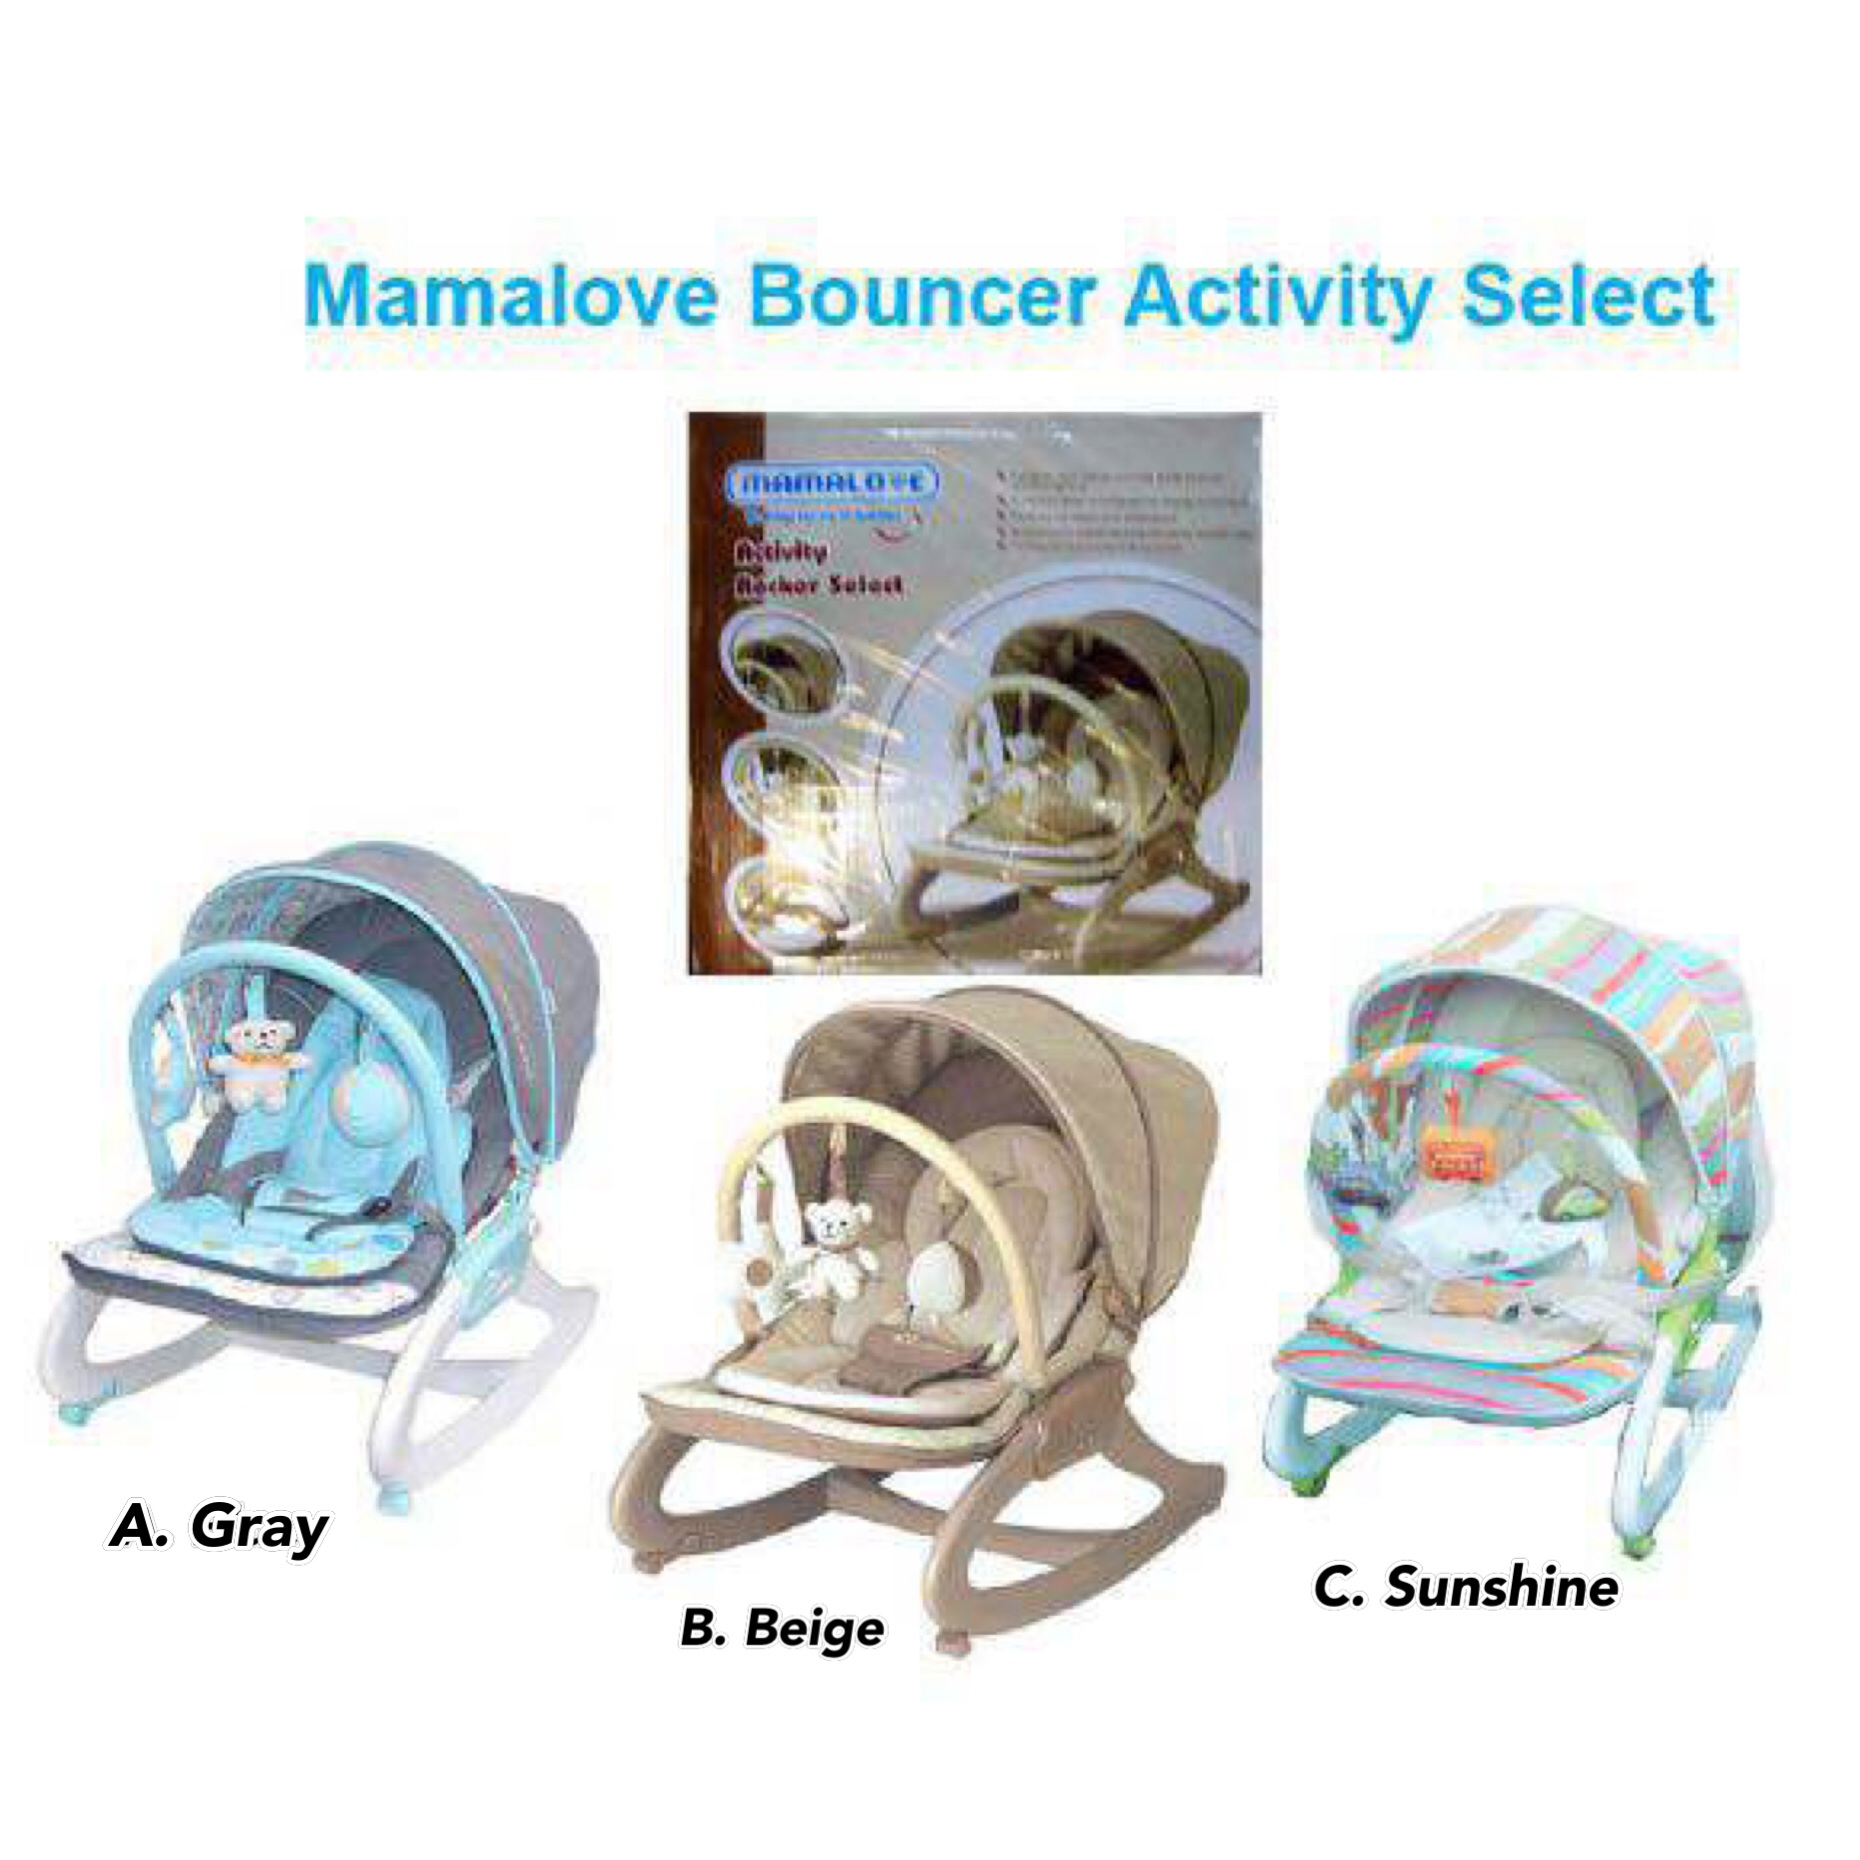 Mamalove Activity Rocker - Mamalove UC40 Baby Bouncher